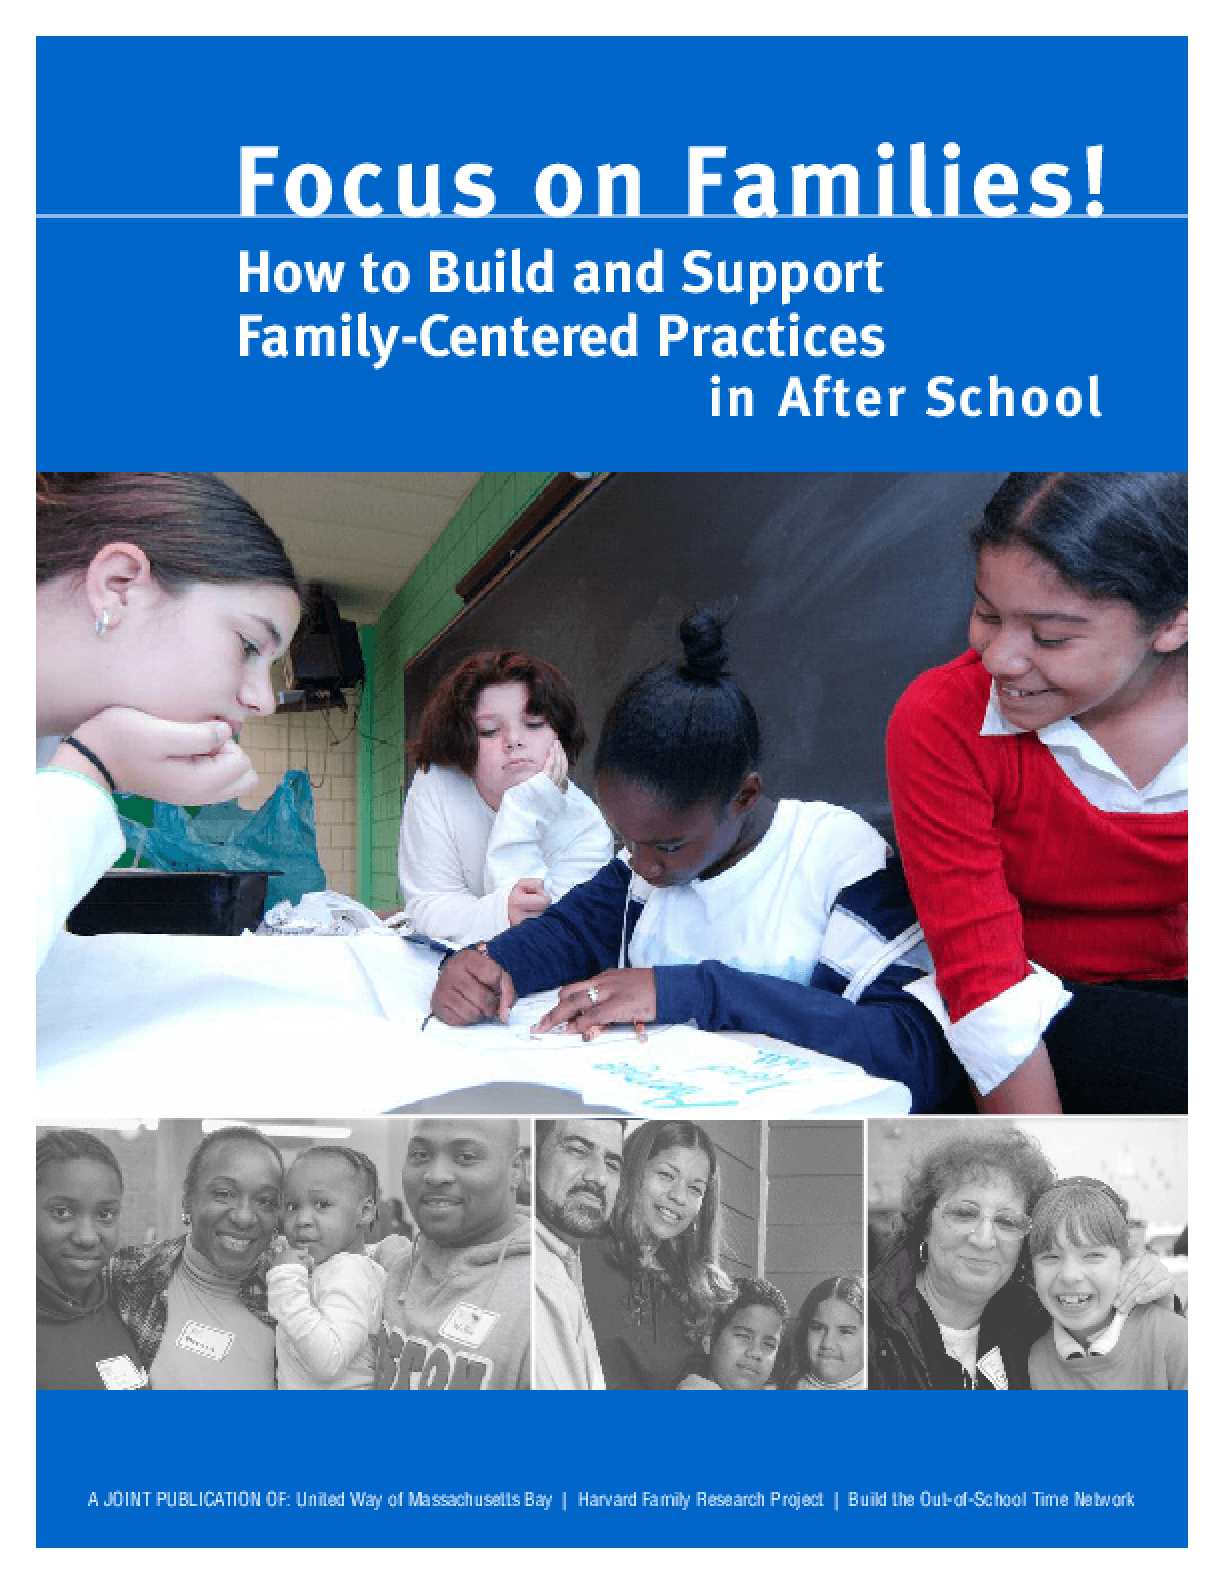 Focus on Families! How to Build and Support Family-Centered Practices in After School